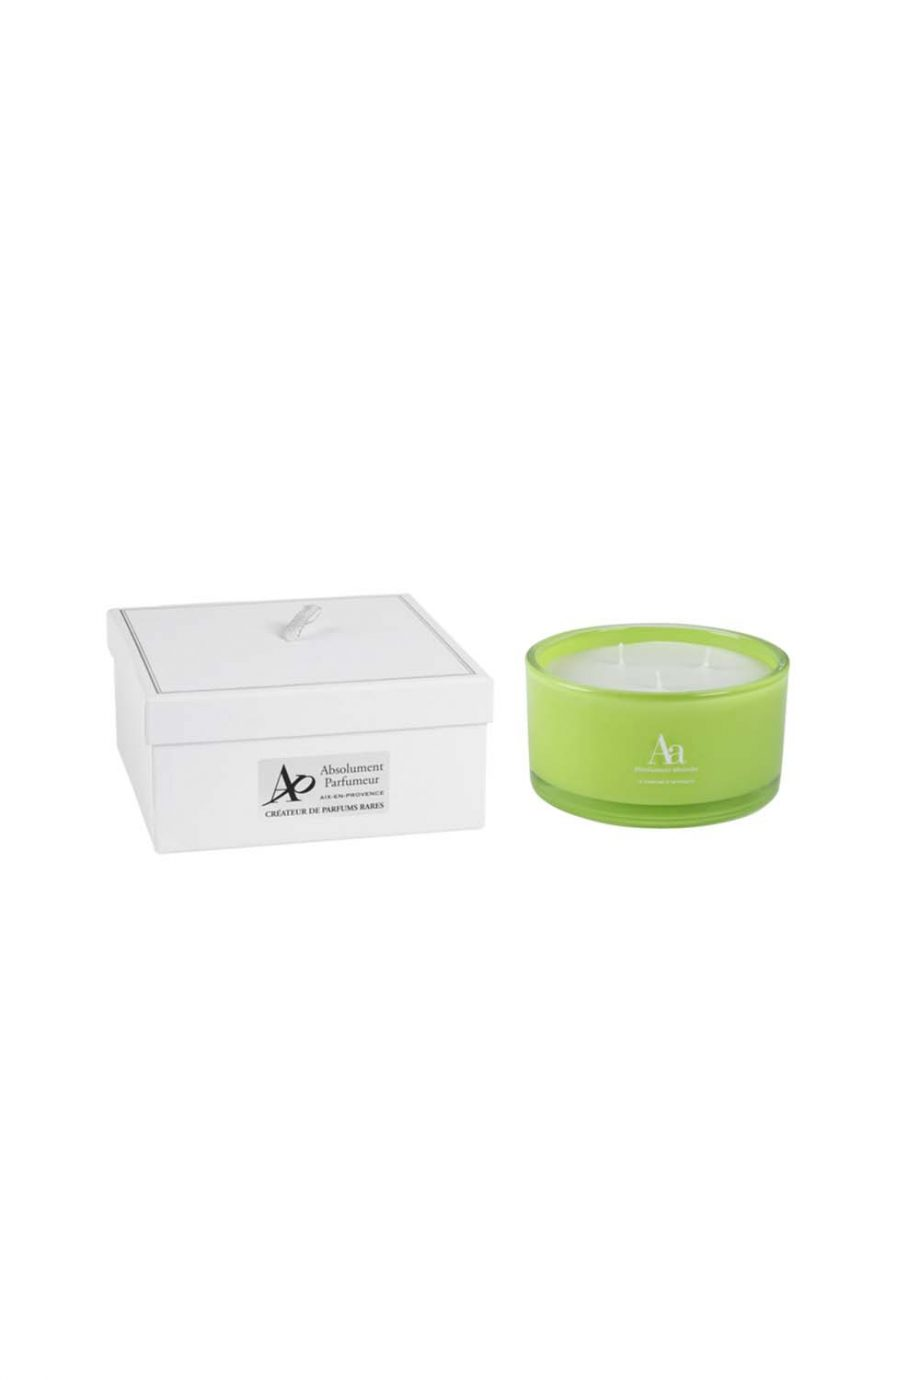 Absolute freshness Absinthe Scented Candle